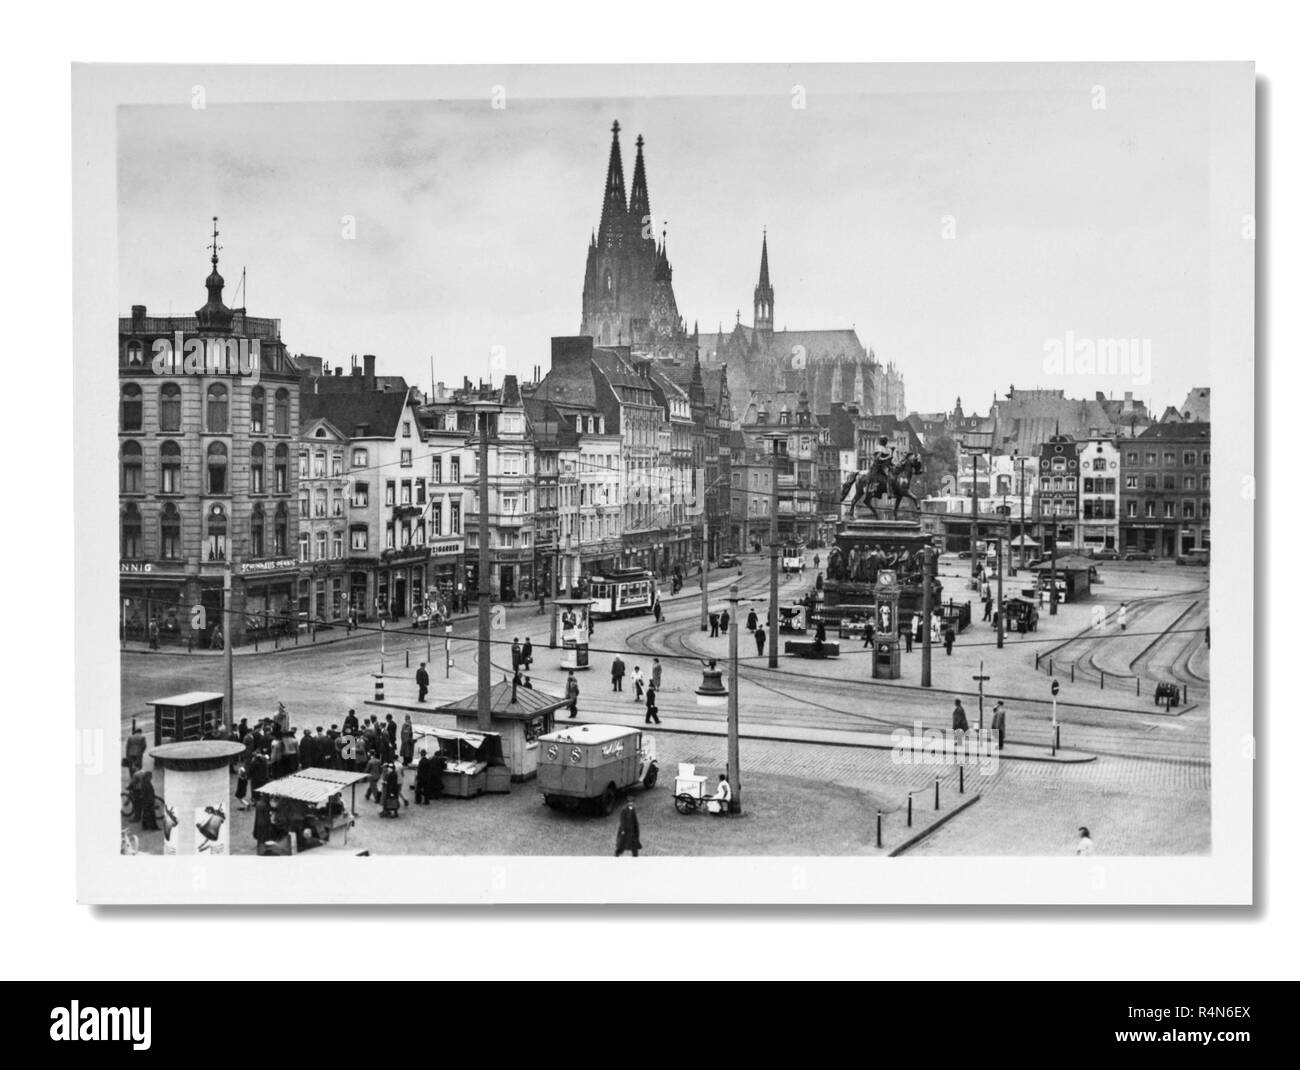 Vintage 1930s photograph of The Heumarkt, Cologne Germany. - Stock Image